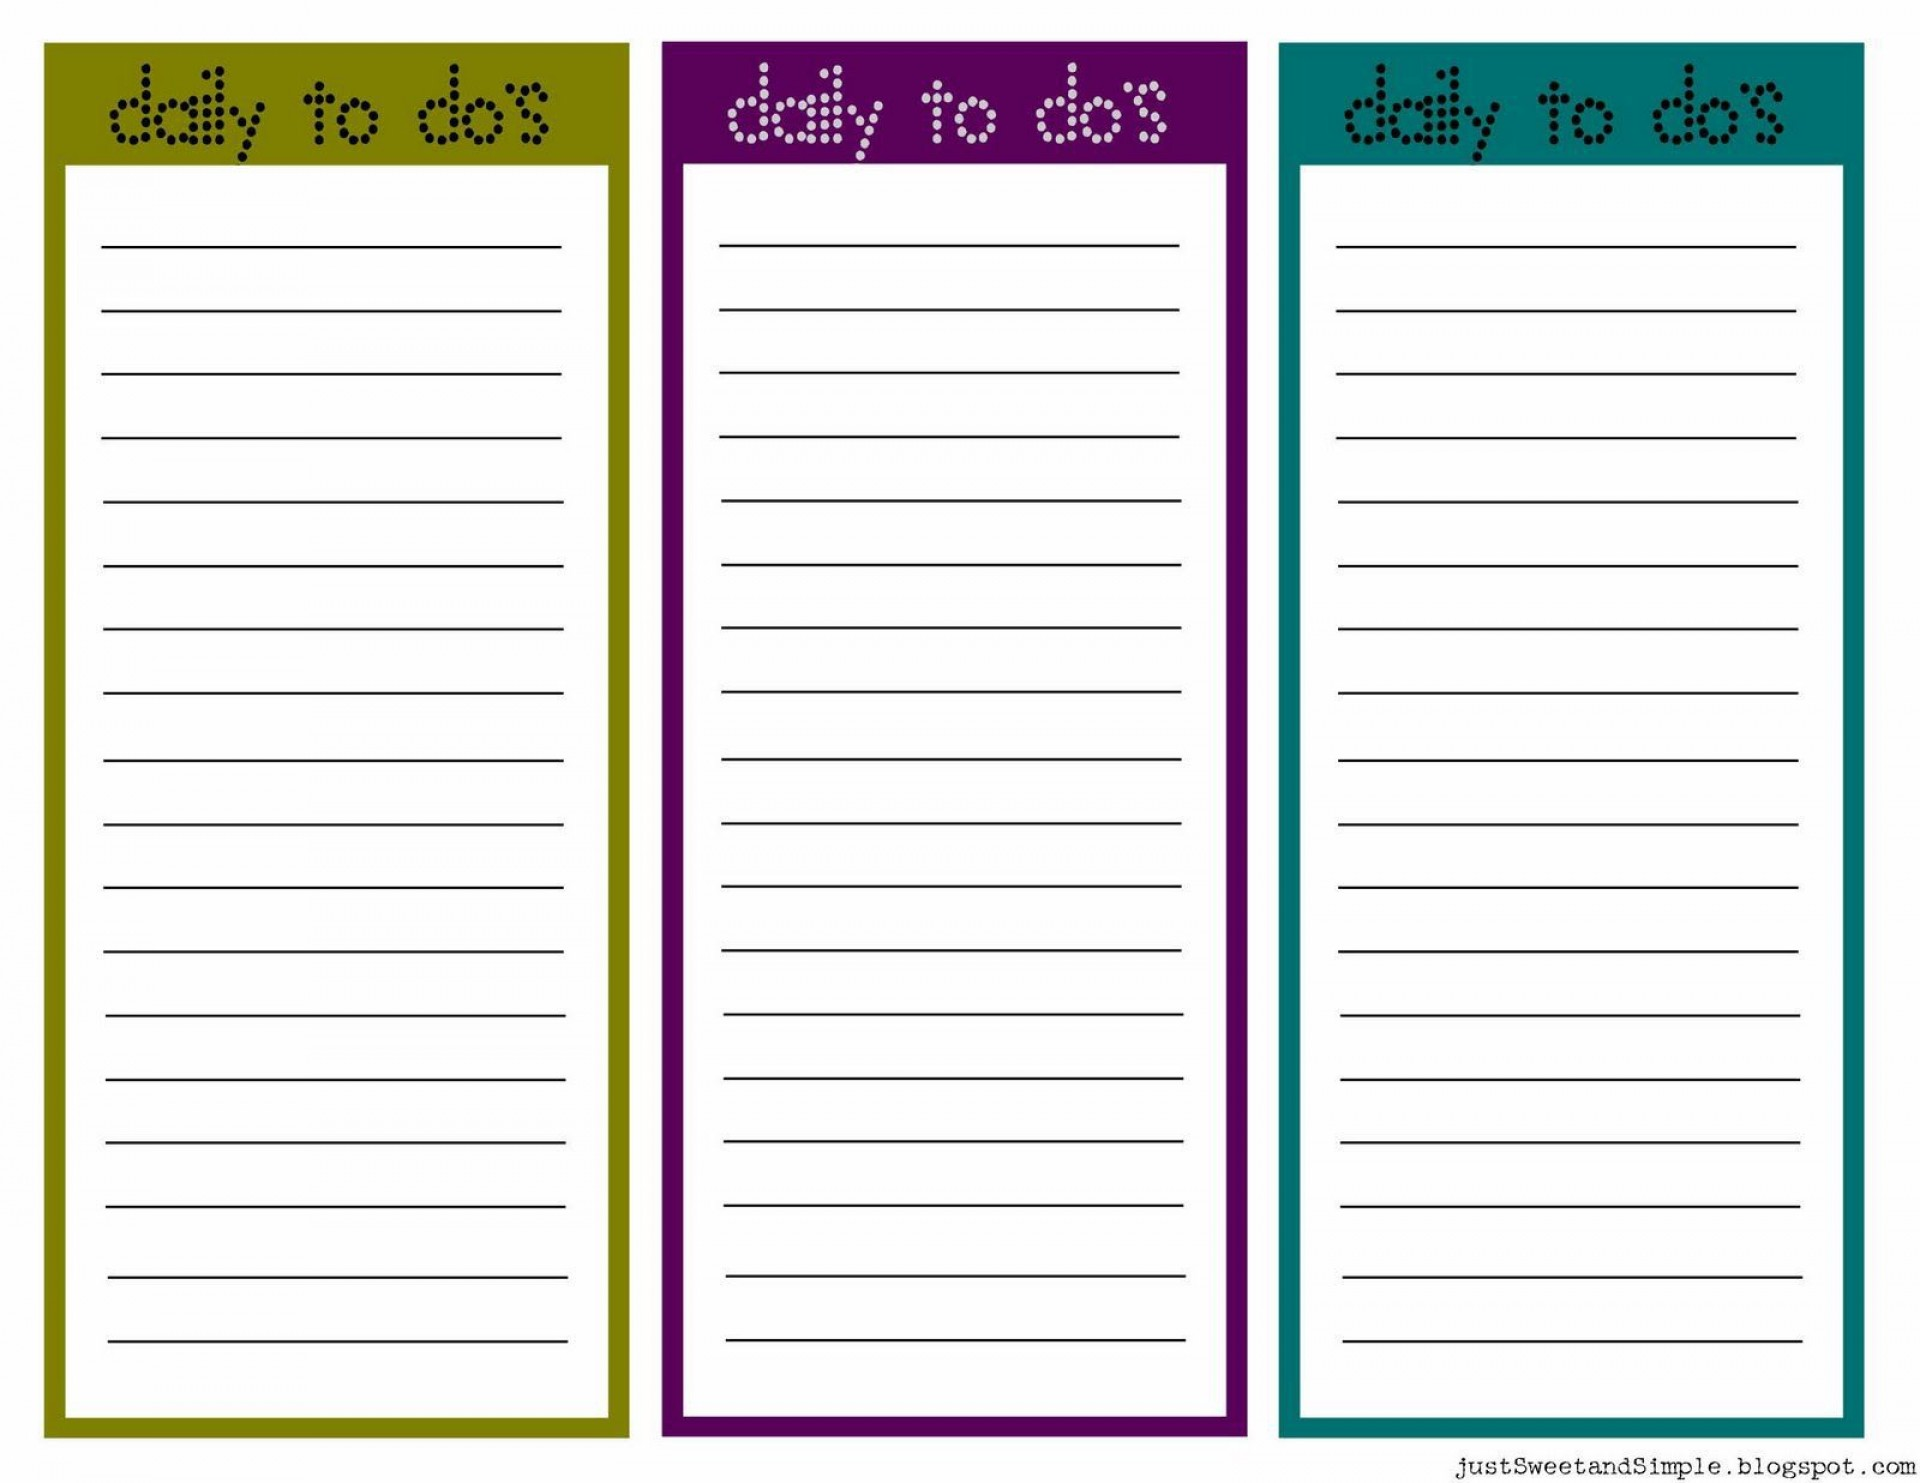 001 Impressive To Do List Template Word High Definition 1920